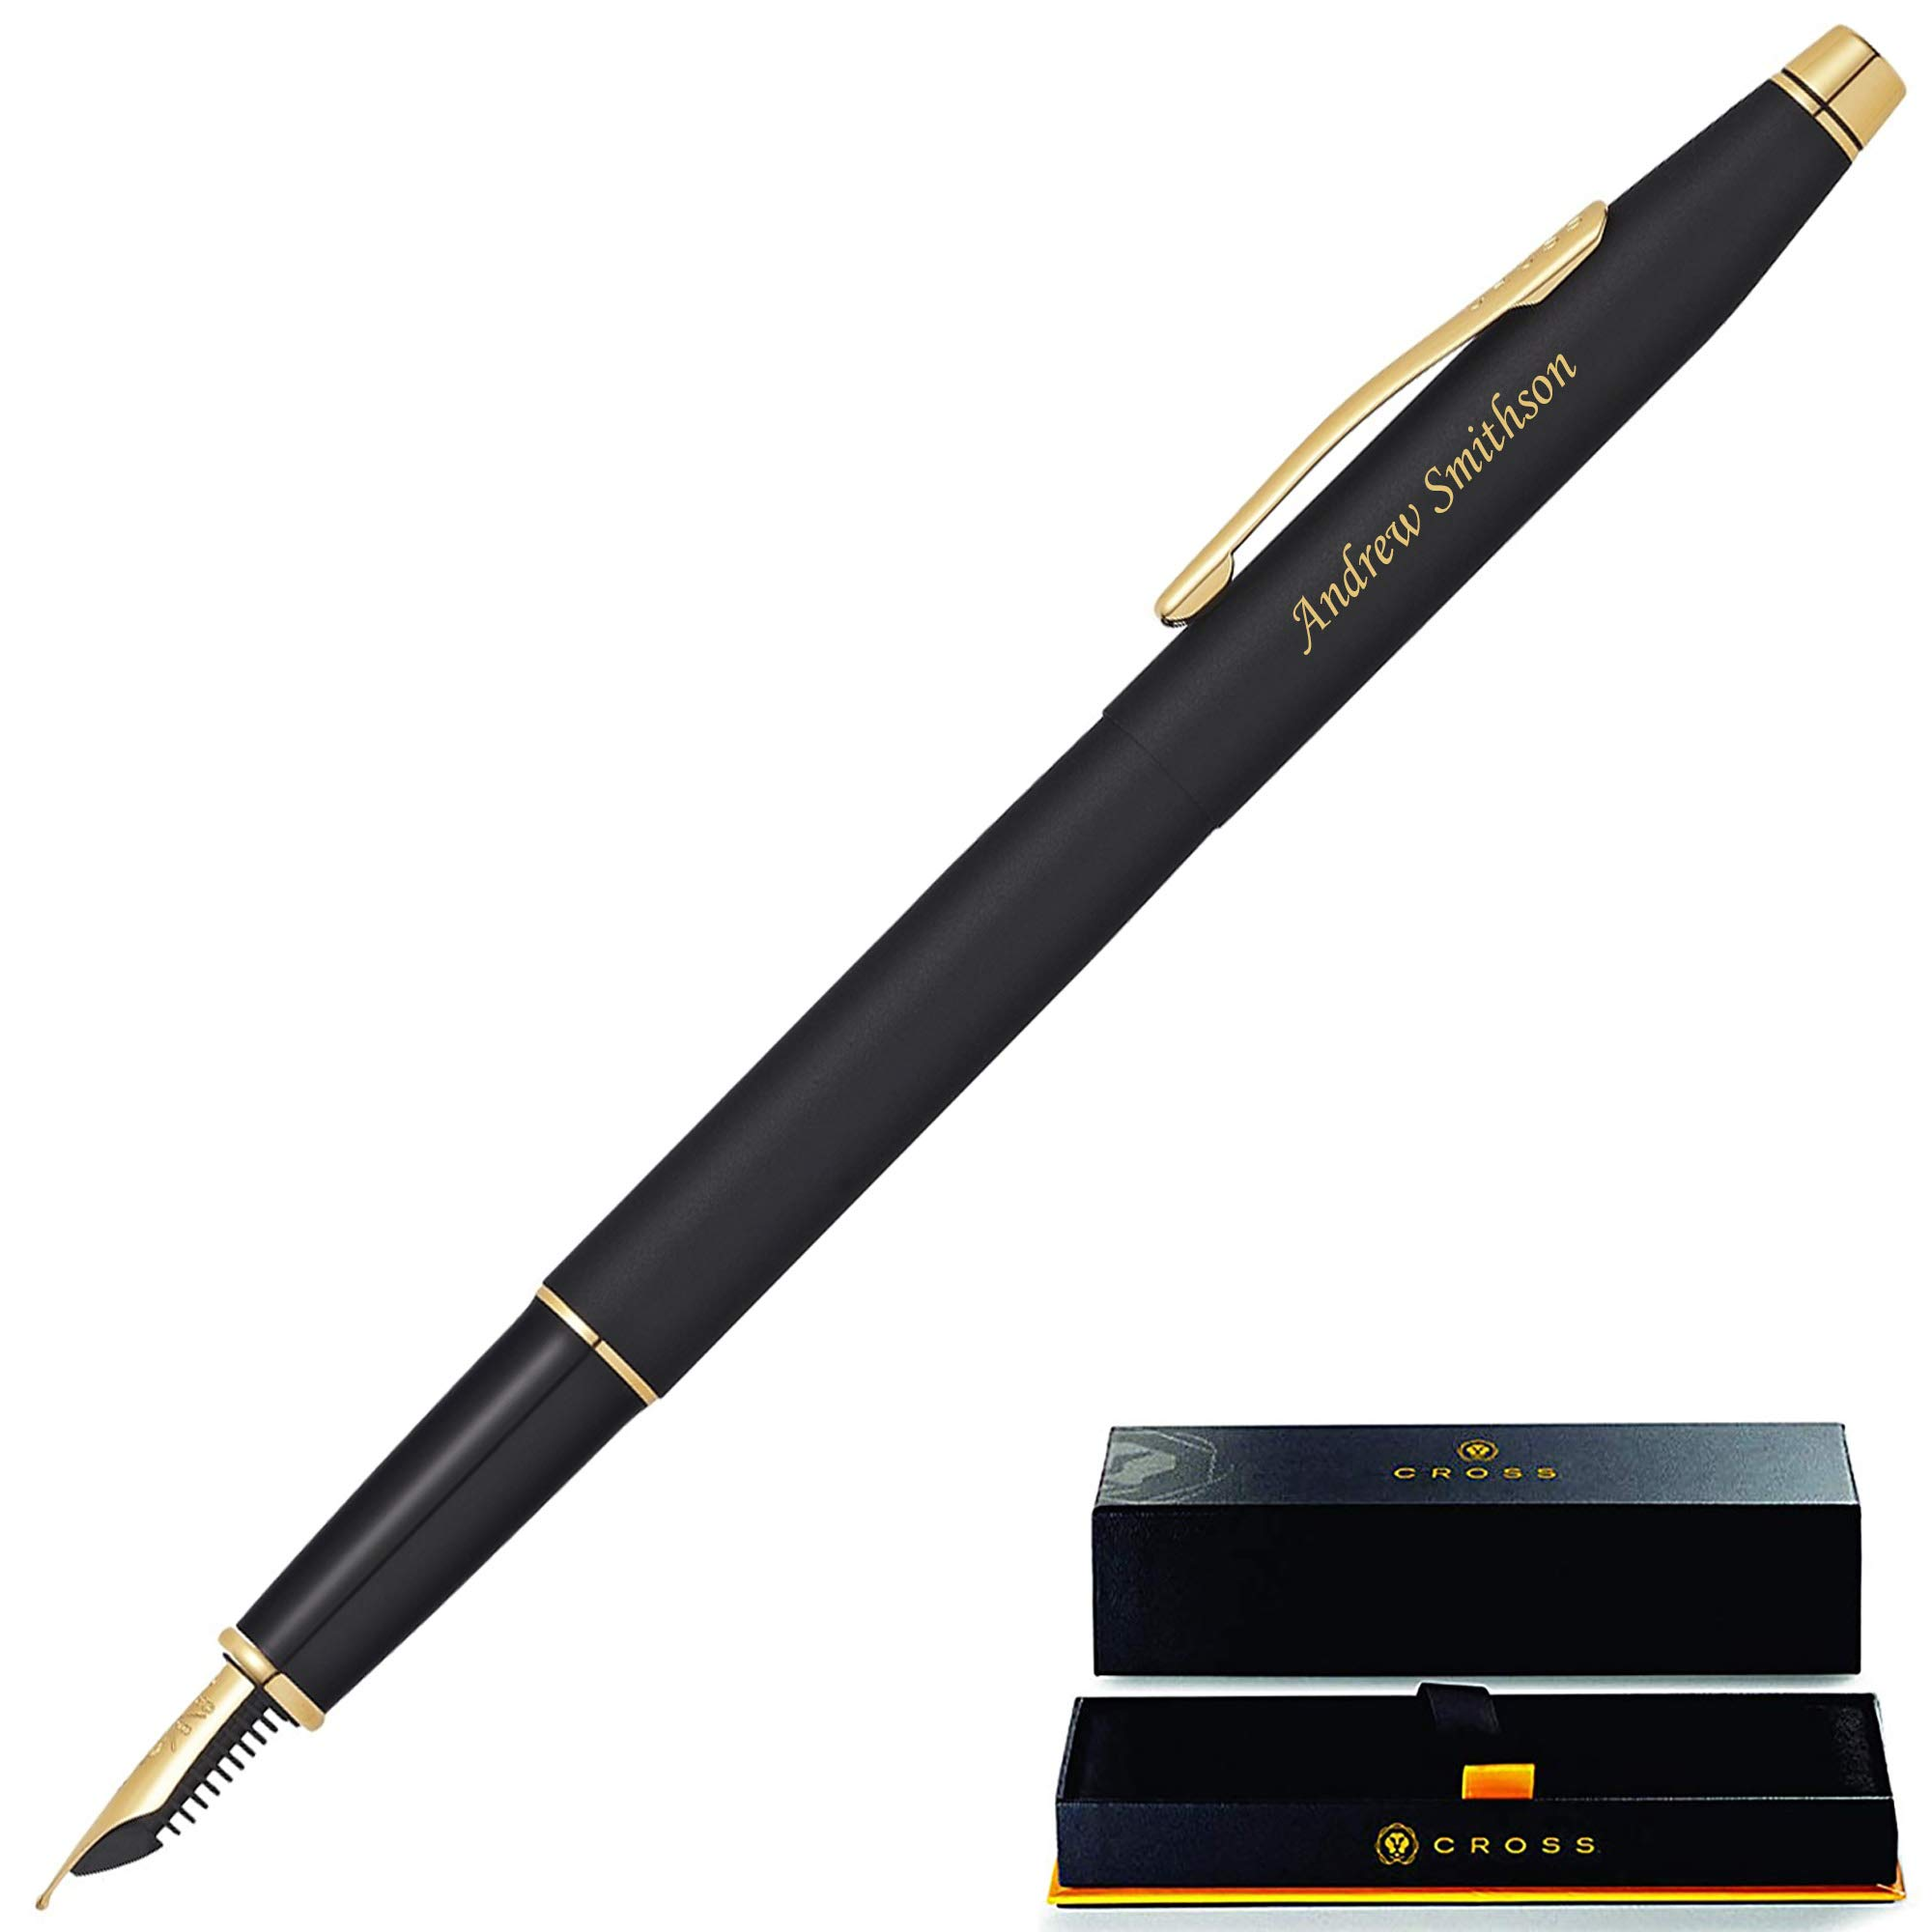 Cross Fountain Pen | Engraved/Personalized Cross Classic Century Black Fountain Pen with Gold Trim AT0086-110MF. Custom Engraved Fast!